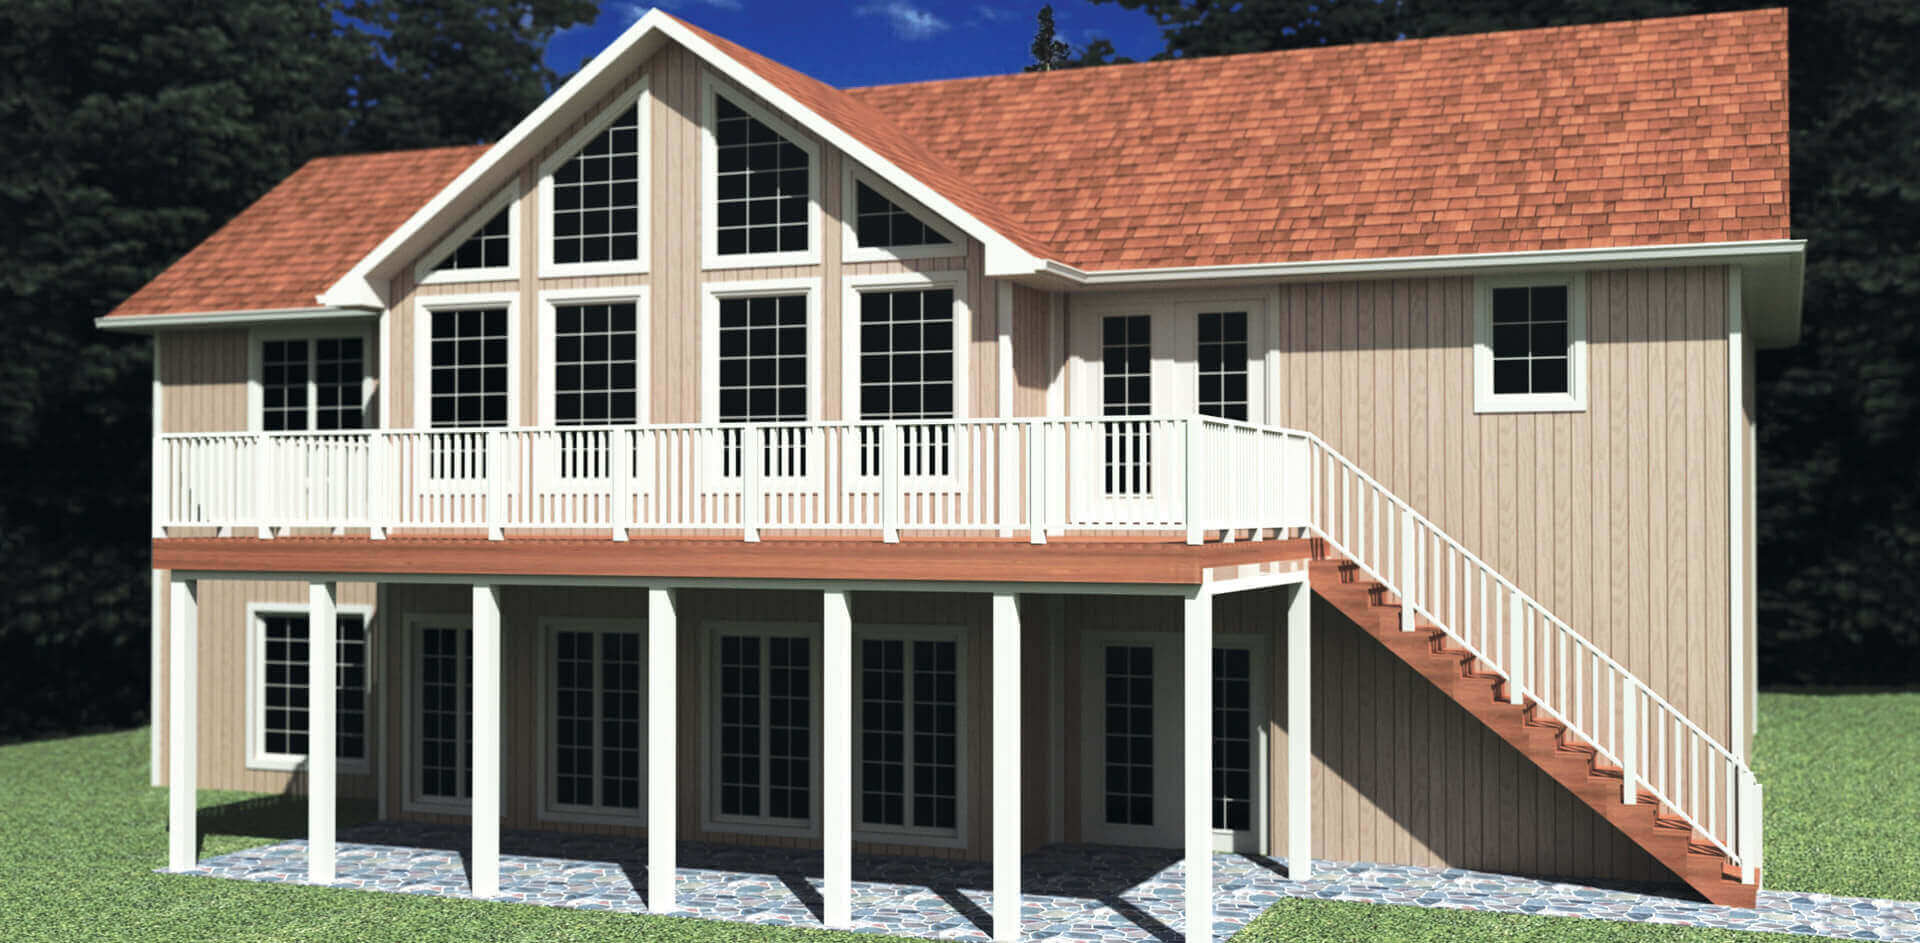 1437 sq.ft. timber mart house 3 bed 2.5 bath exterior render